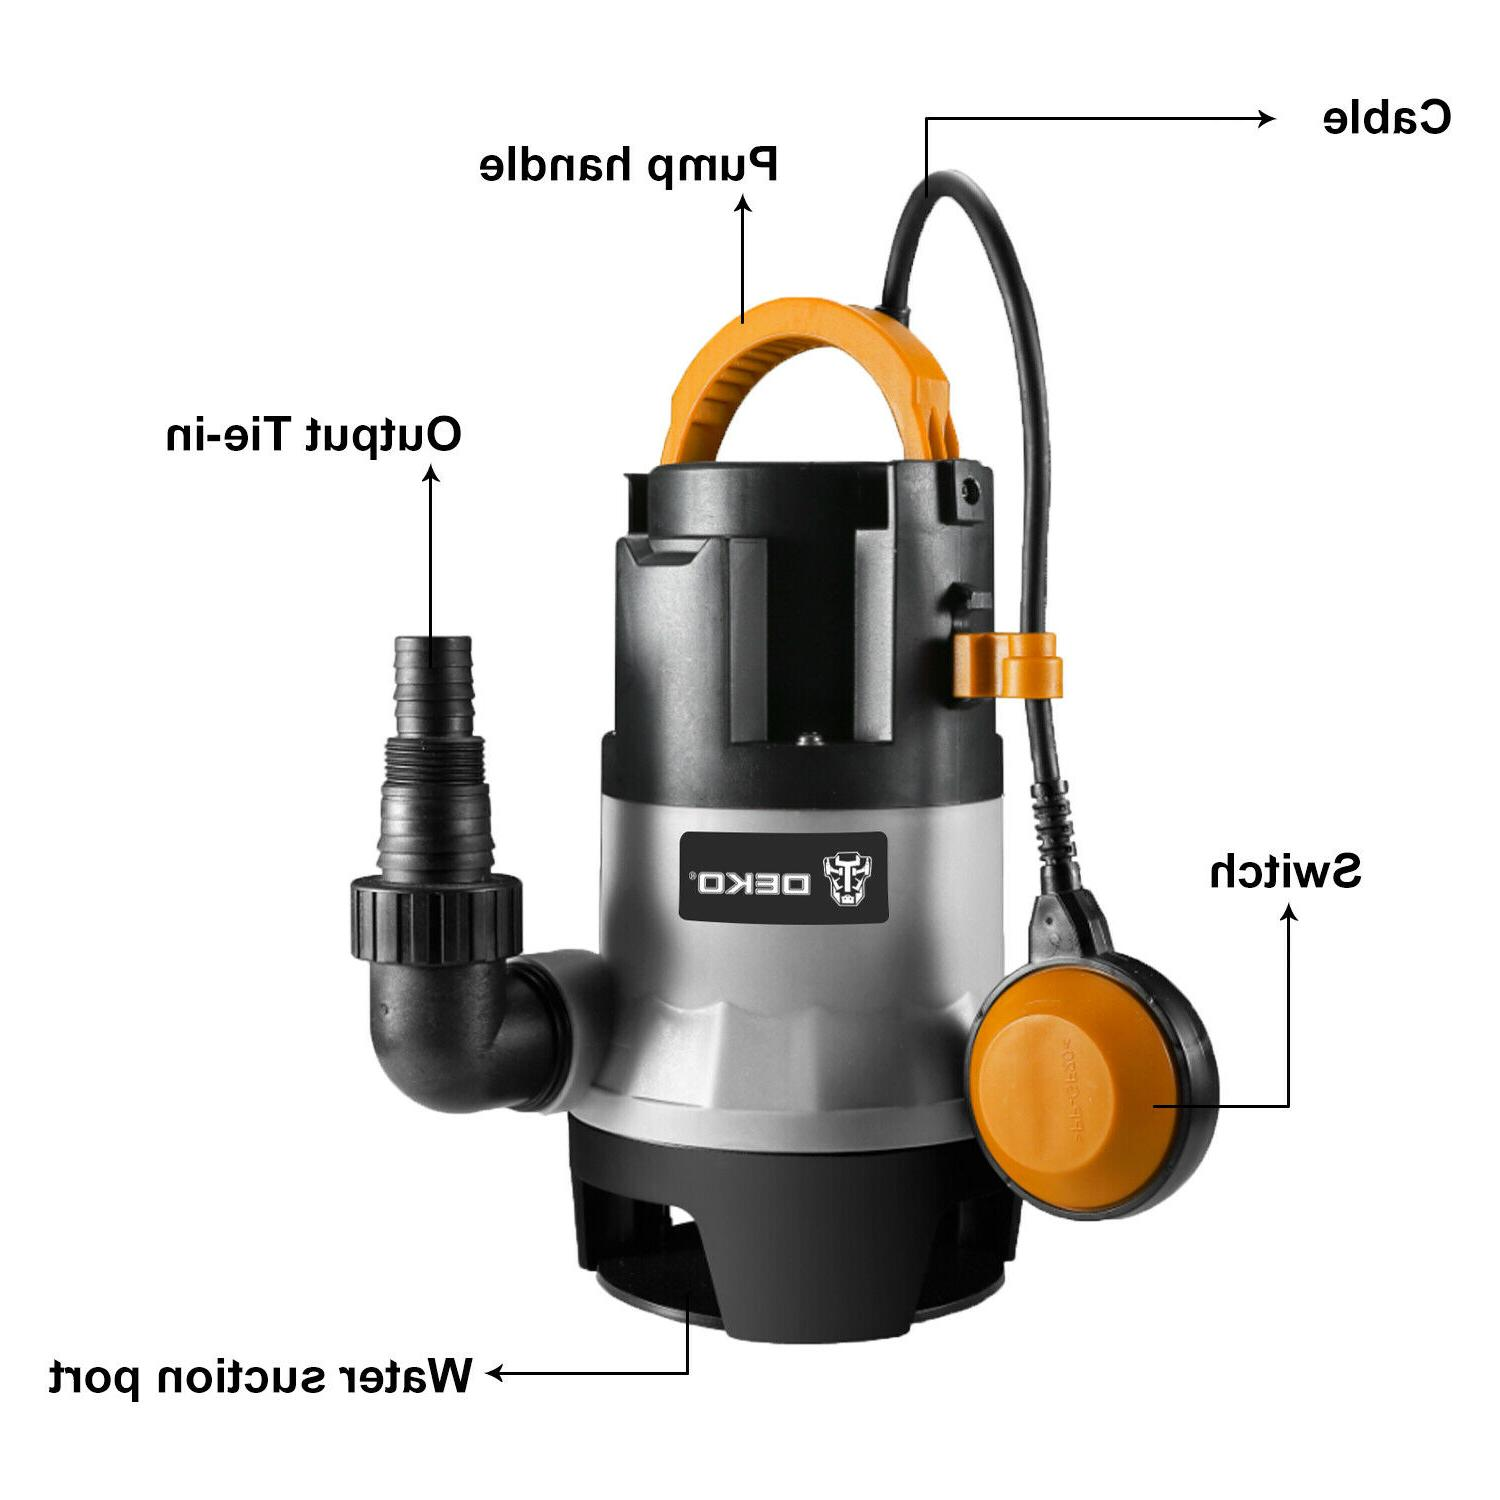 DEKO 400W 1/2HP Sump Pump Clean/Dirty Water Pump